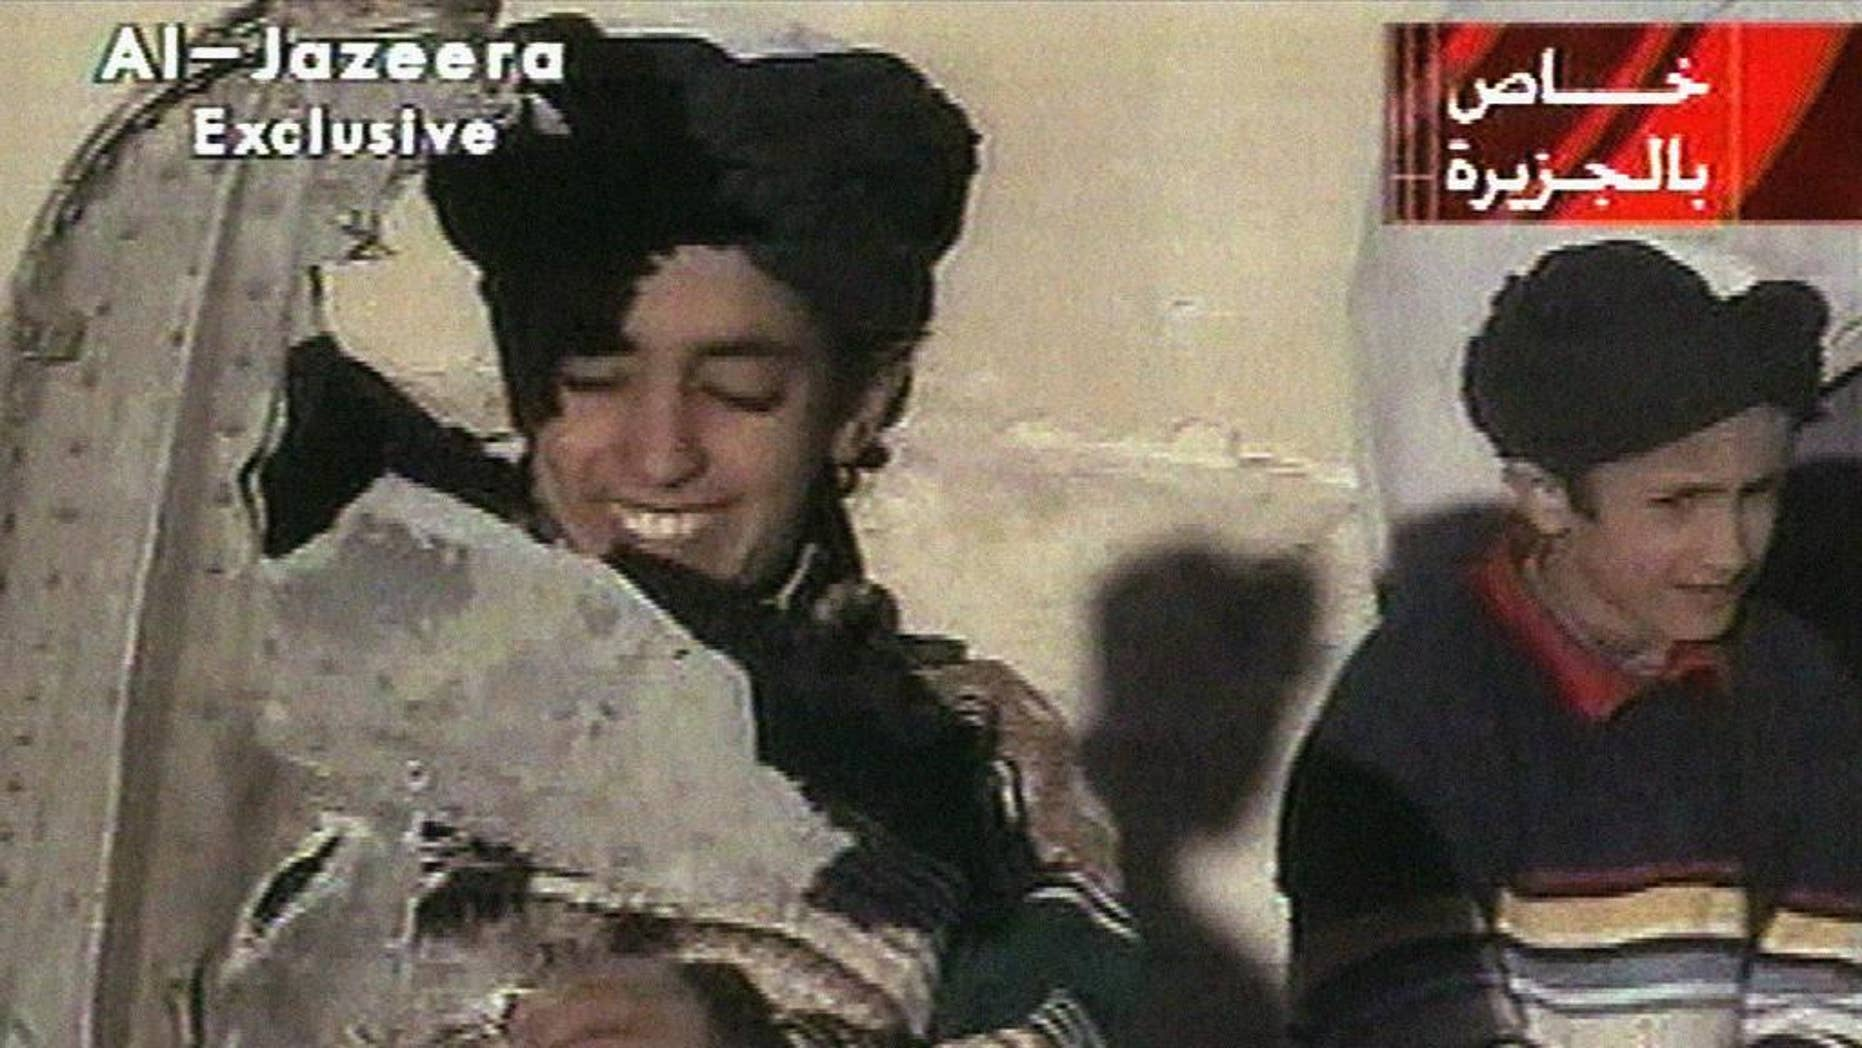 """In this image made from video broadcast by the Qatari-based satellite television station Al-Jazeera Wednesday, Nov. 7, 2001, a young boy, left, identified as Hamza bin Laden holds what the Taliban says is a piece of U.S. helicopter wreckage in Ghazni, Afghanistan on Monday, Nov. 5, 2001. The Obama administration has announced terrorism-related sanctions against a son of Sept. 11 mastermind Osama bin Laden. The State Department says Hamza bin Laden has been """"determined to have committed, or pose a serious risk of committing, acts of terrorism that threaten the security of U.S. nationals or the national security.""""  (AP Photo/Al-Jazeera via APTN) ** TV OUT **"""